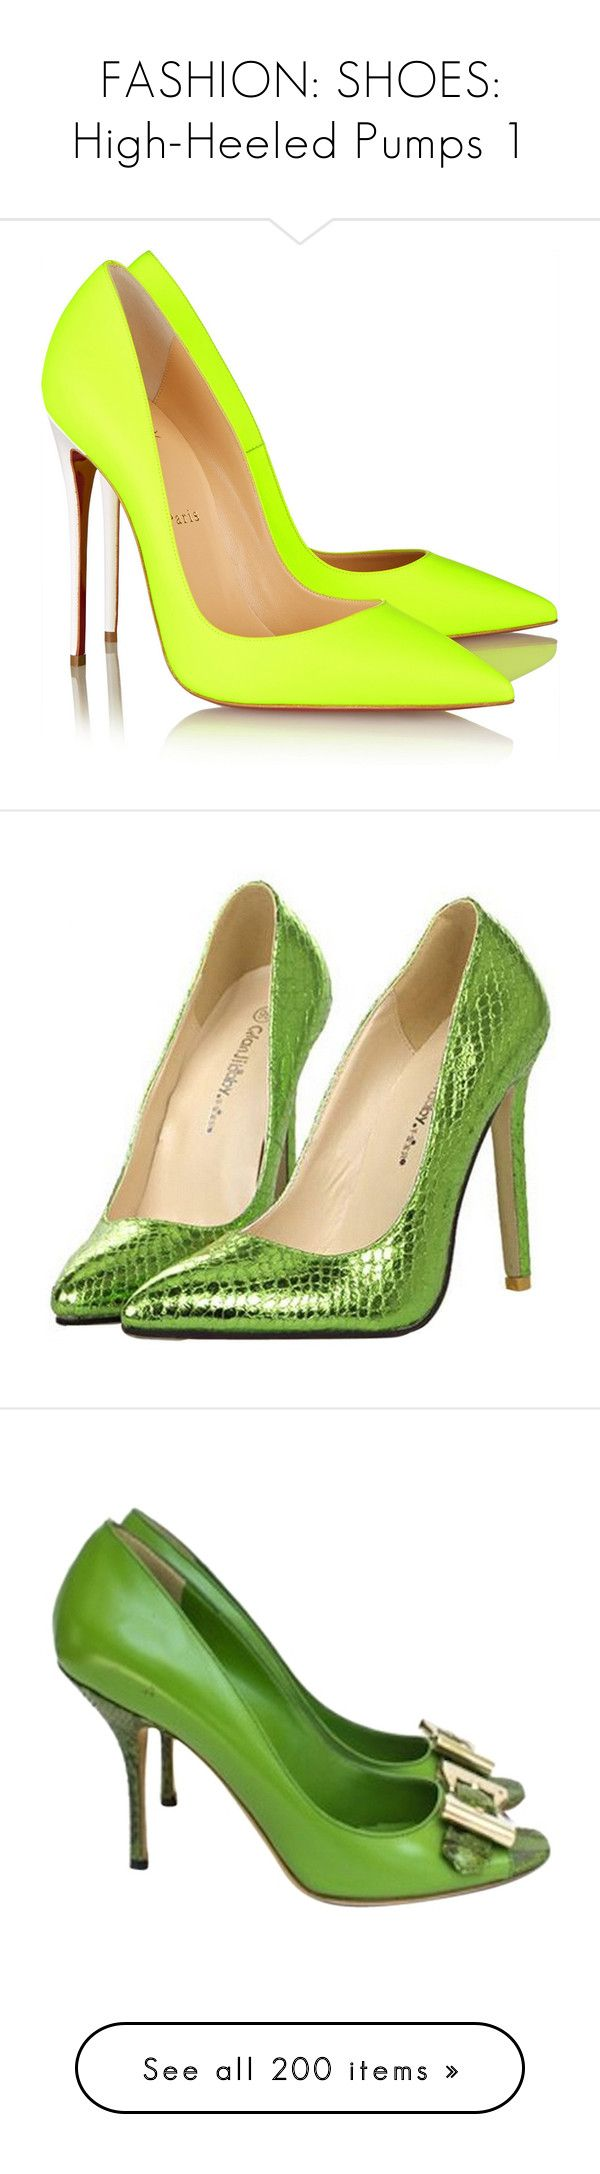 """""""FASHION: SHOES: High-Heeled Pumps 1"""" by eva-malecka ❤ liked on Polyvore featuring shoes, pumps, heels, christian louboutin, sapatos, neon pumps, christian louboutin shoes, leather shoes, neon heels pumps and christian louboutin pumps"""